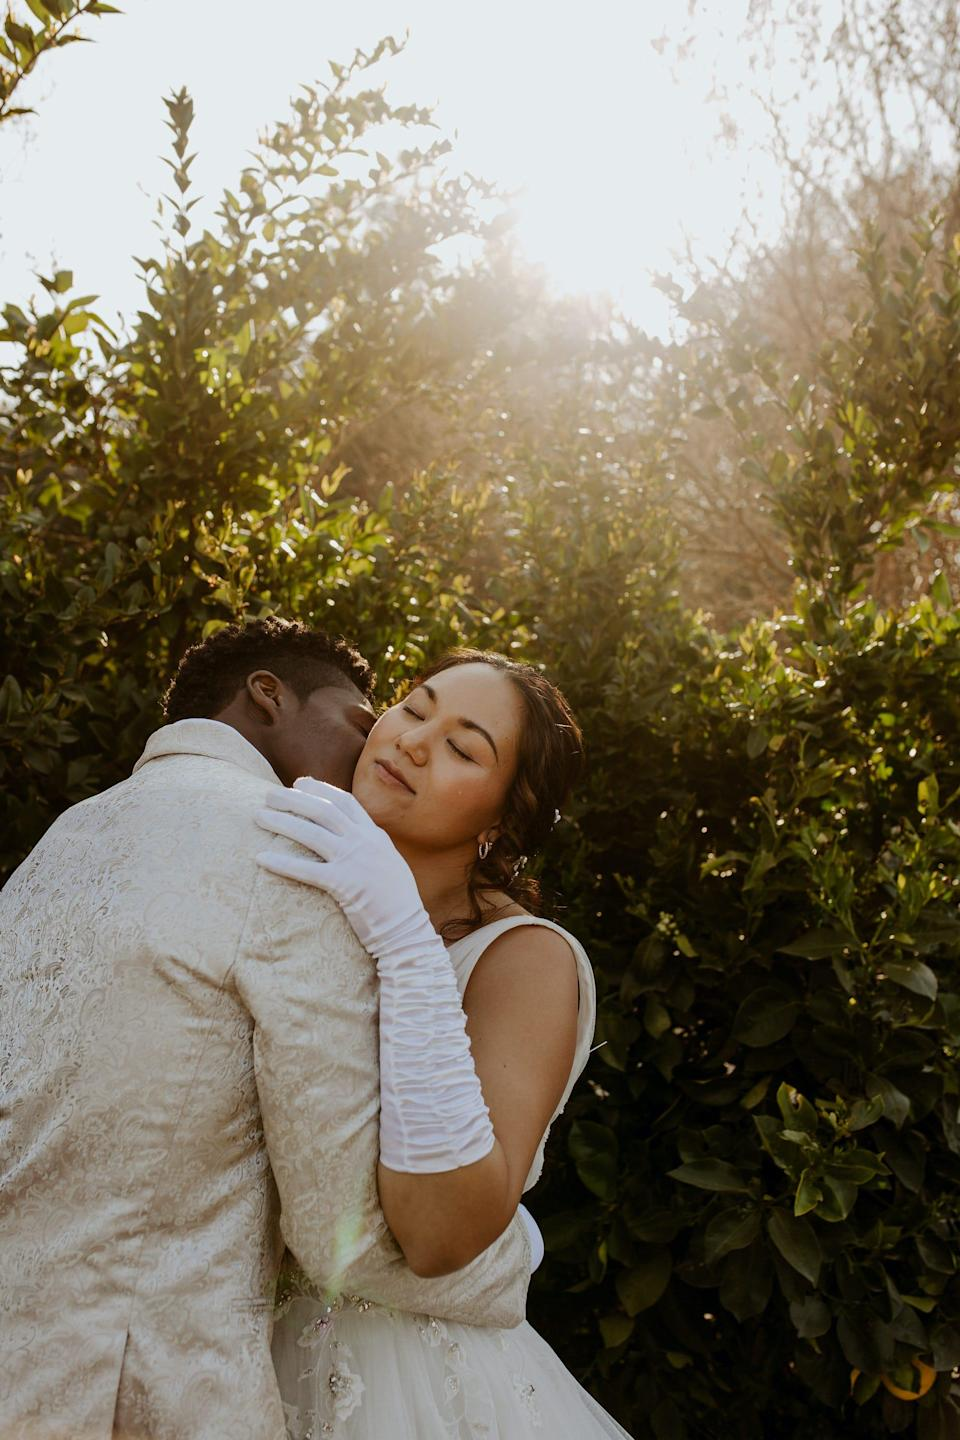 A bride and groom embrace in front of trees.